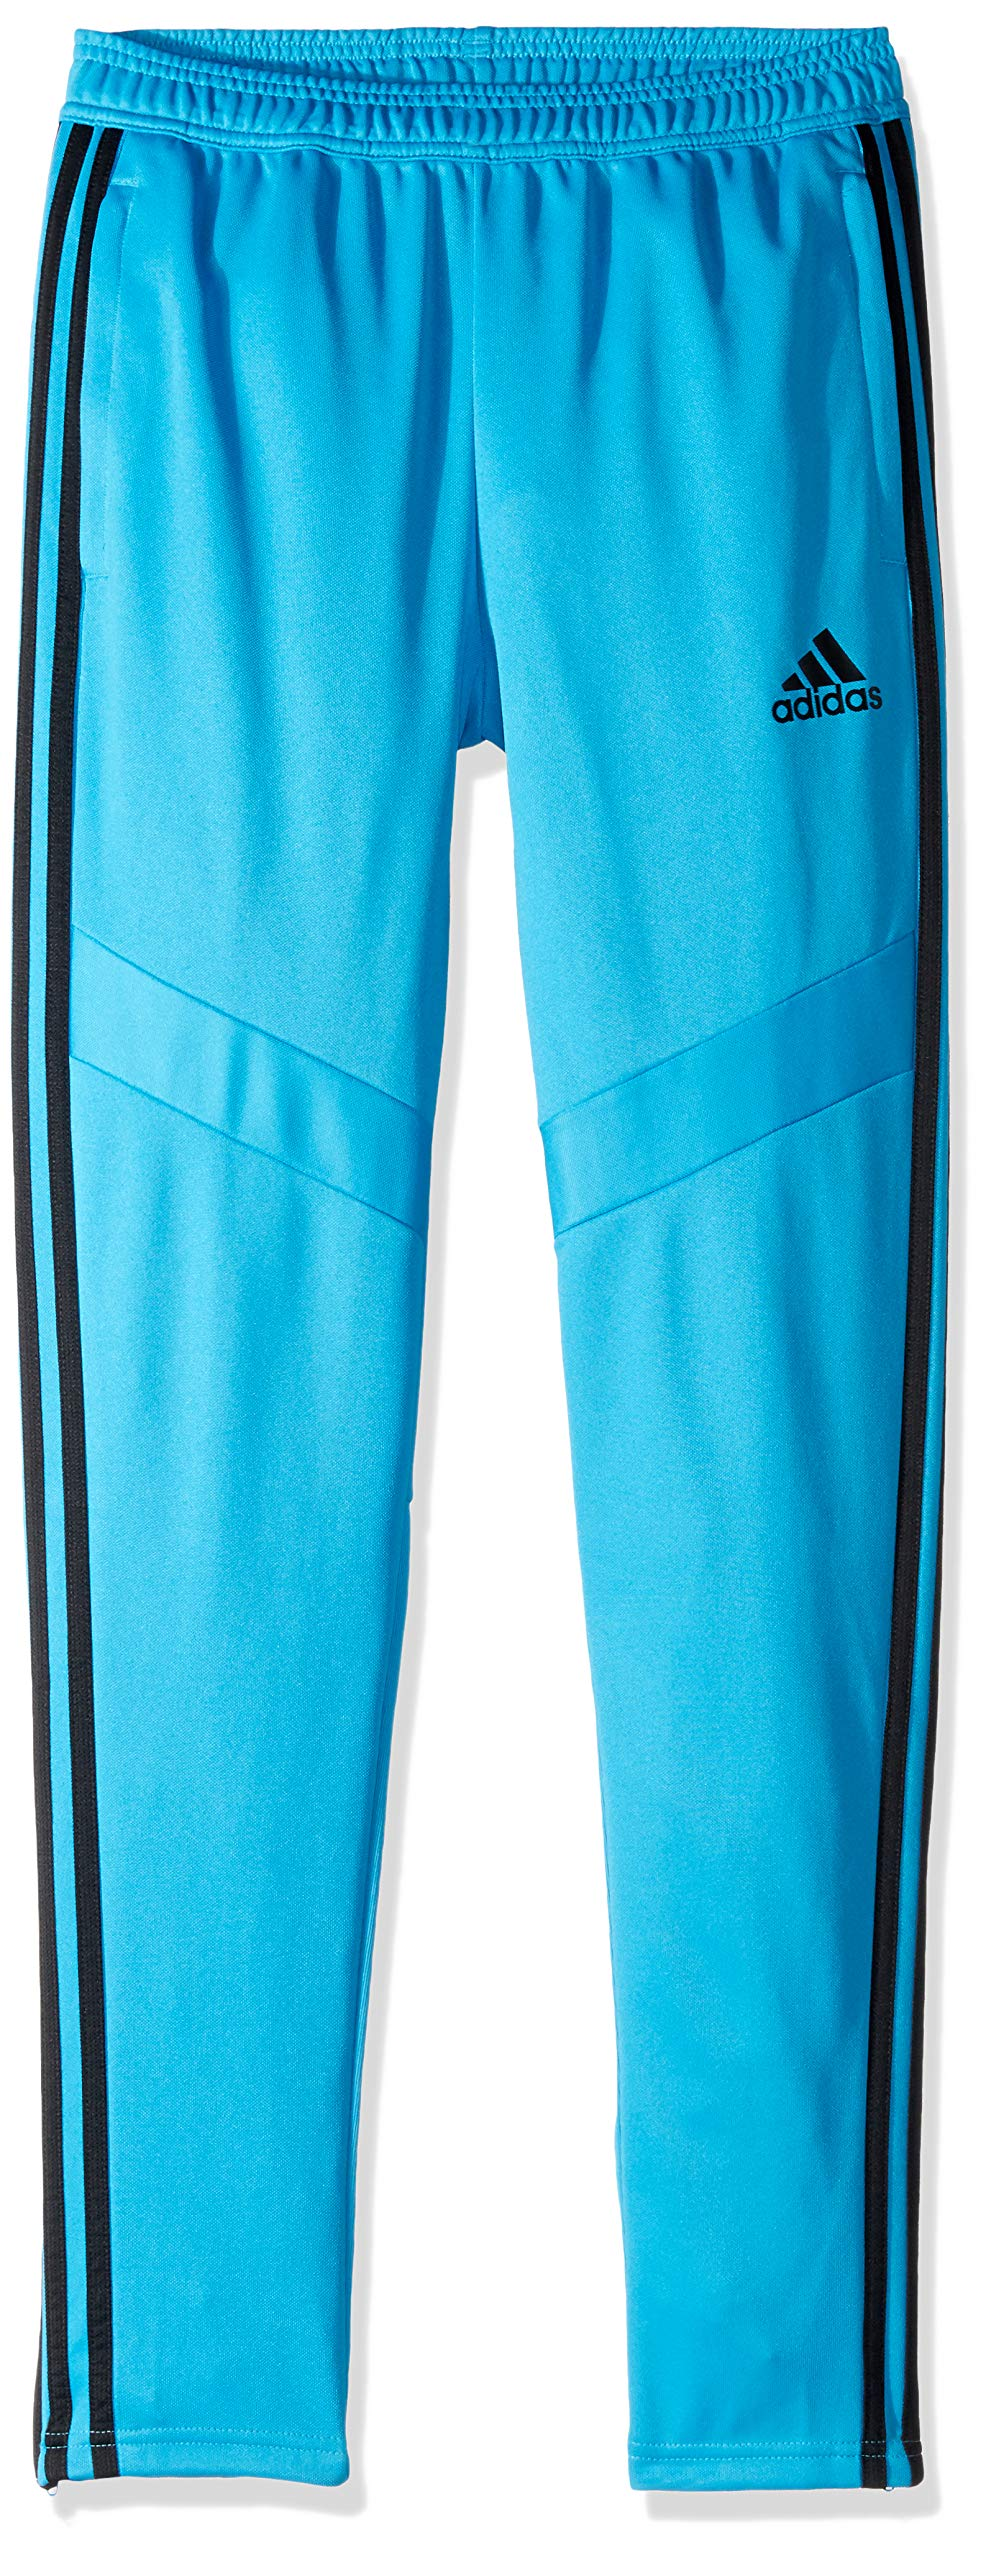 adidas Youth Tiro19 Youth Training Pants, Shock Cyan/Black, XX-Small